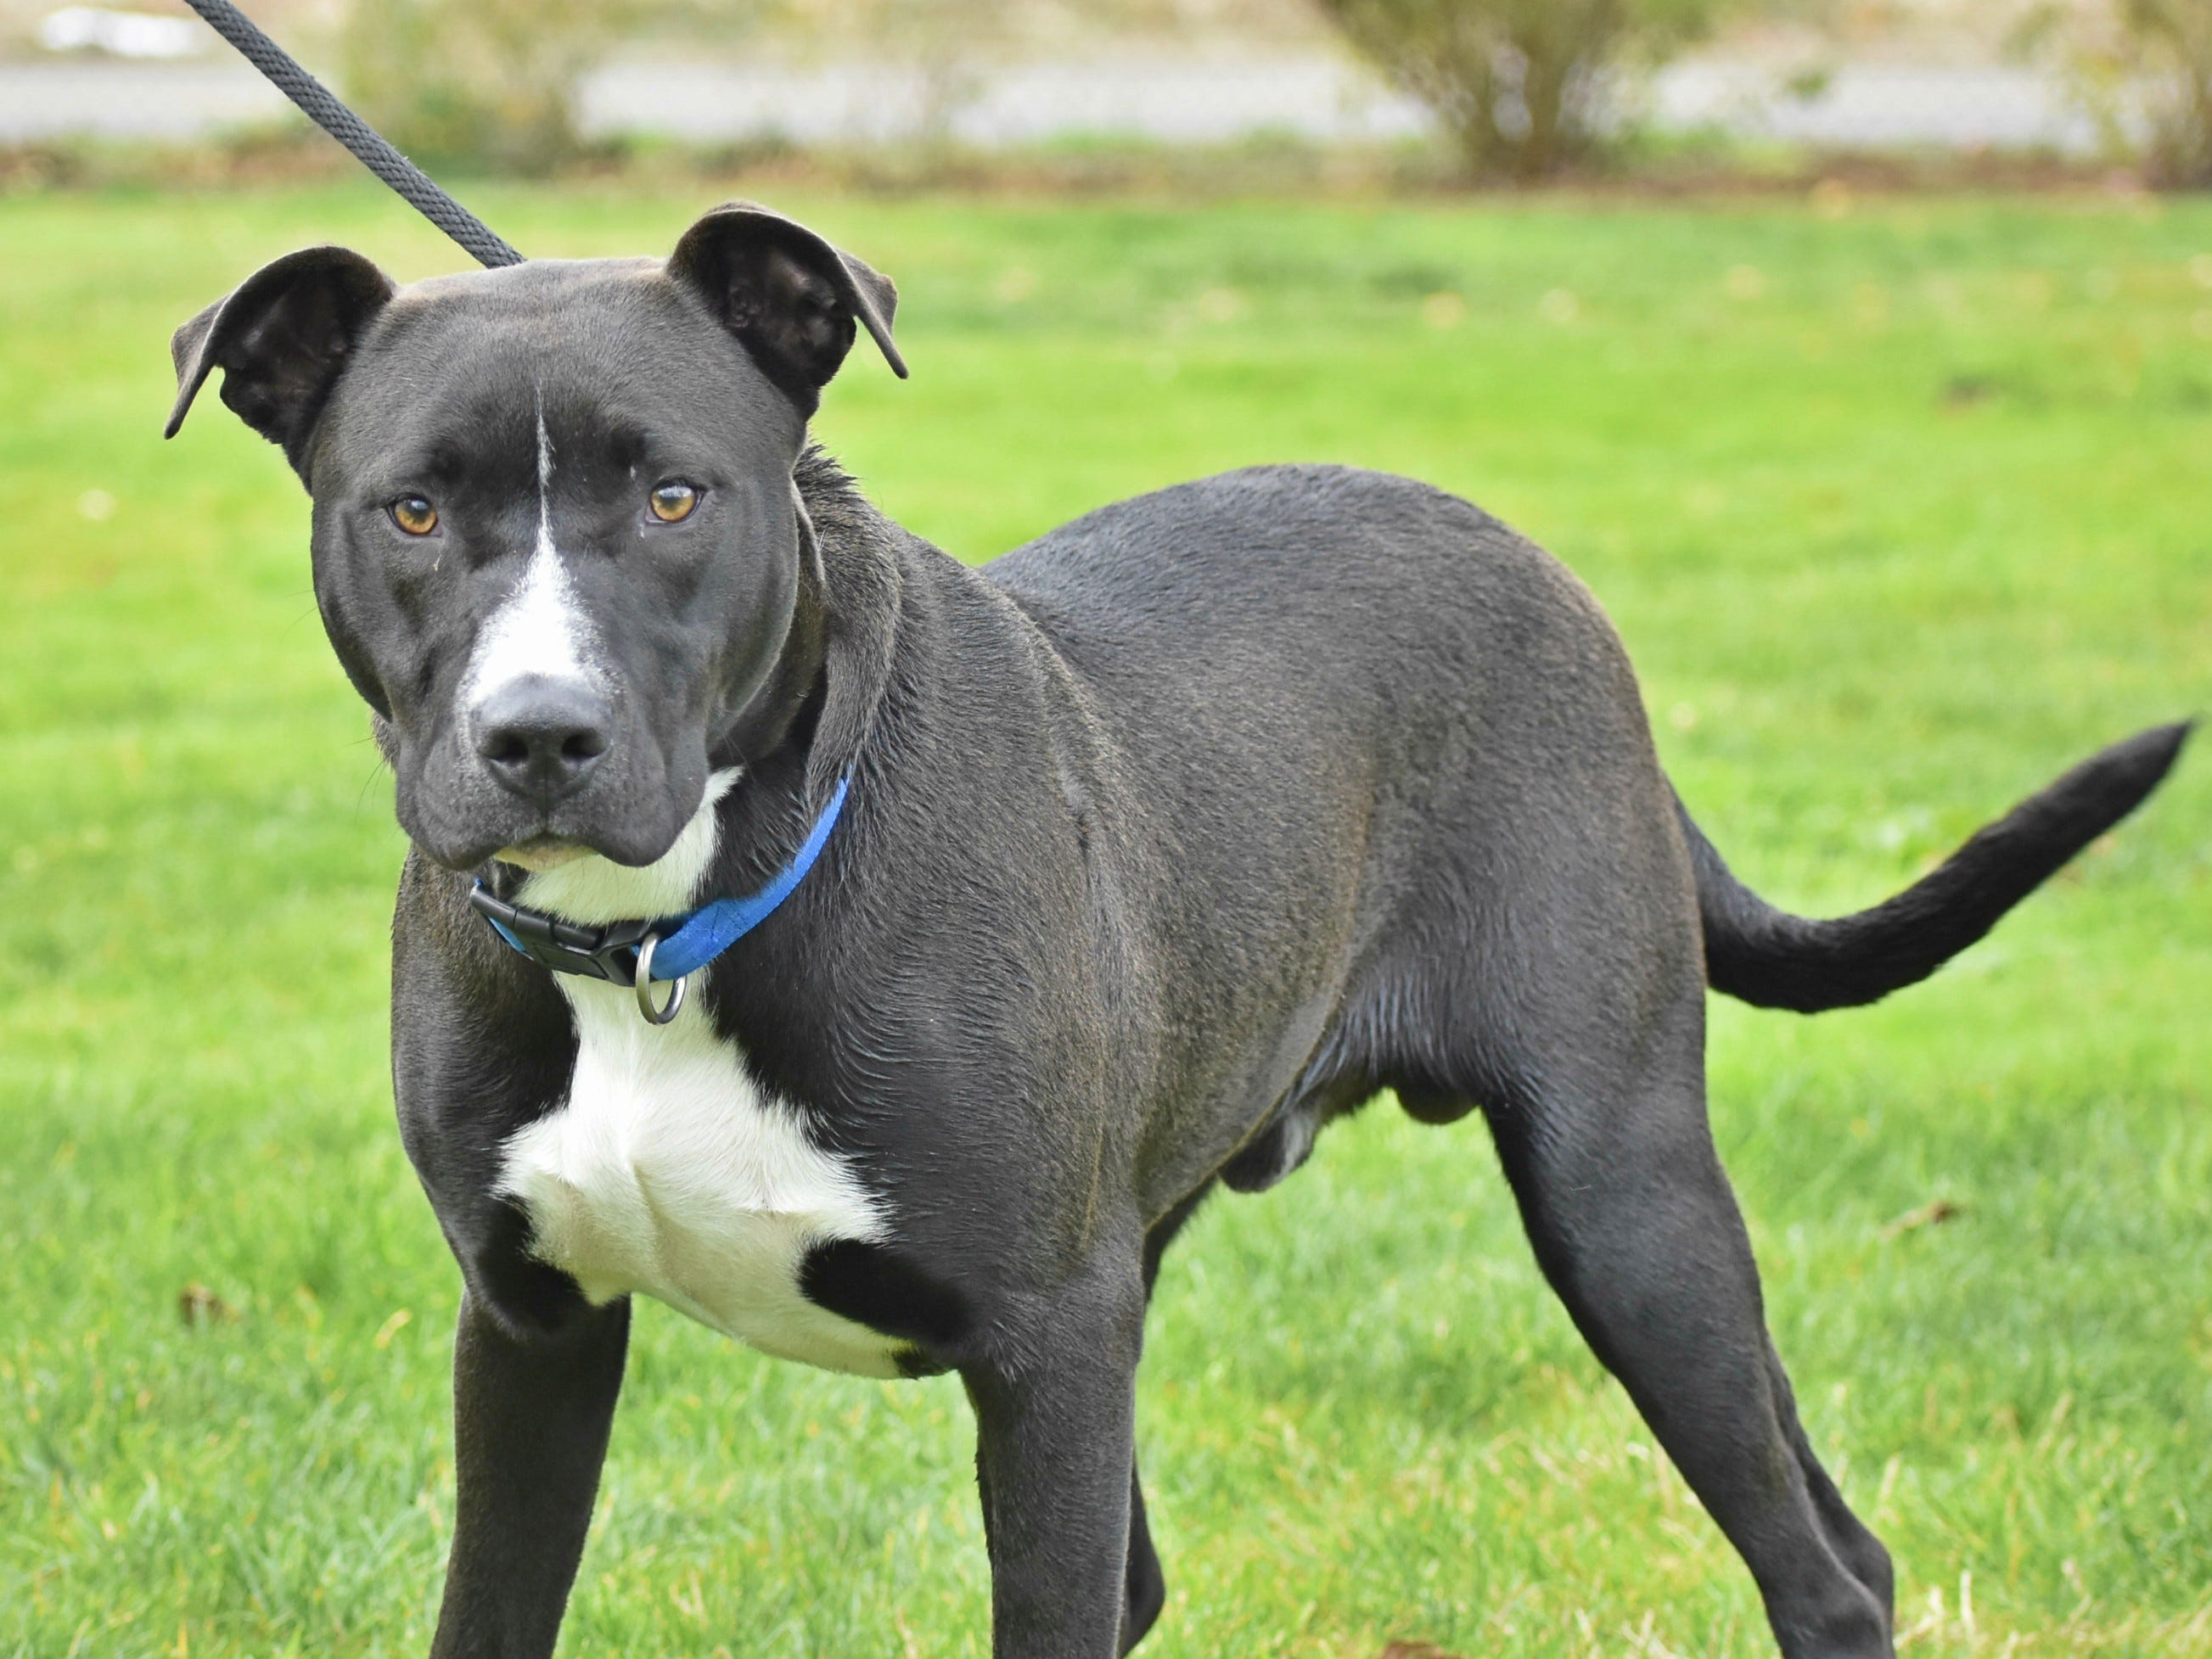 Jackson is a 1-year-old male black and white Labrador Retriever mix. He is a sweet, gentle boy who would love a new family to go on adventures with. Jackson would love to go to the beach, hiking and exploring with his new family. For information, contact Marion County Dog Services at 503-588-5366.